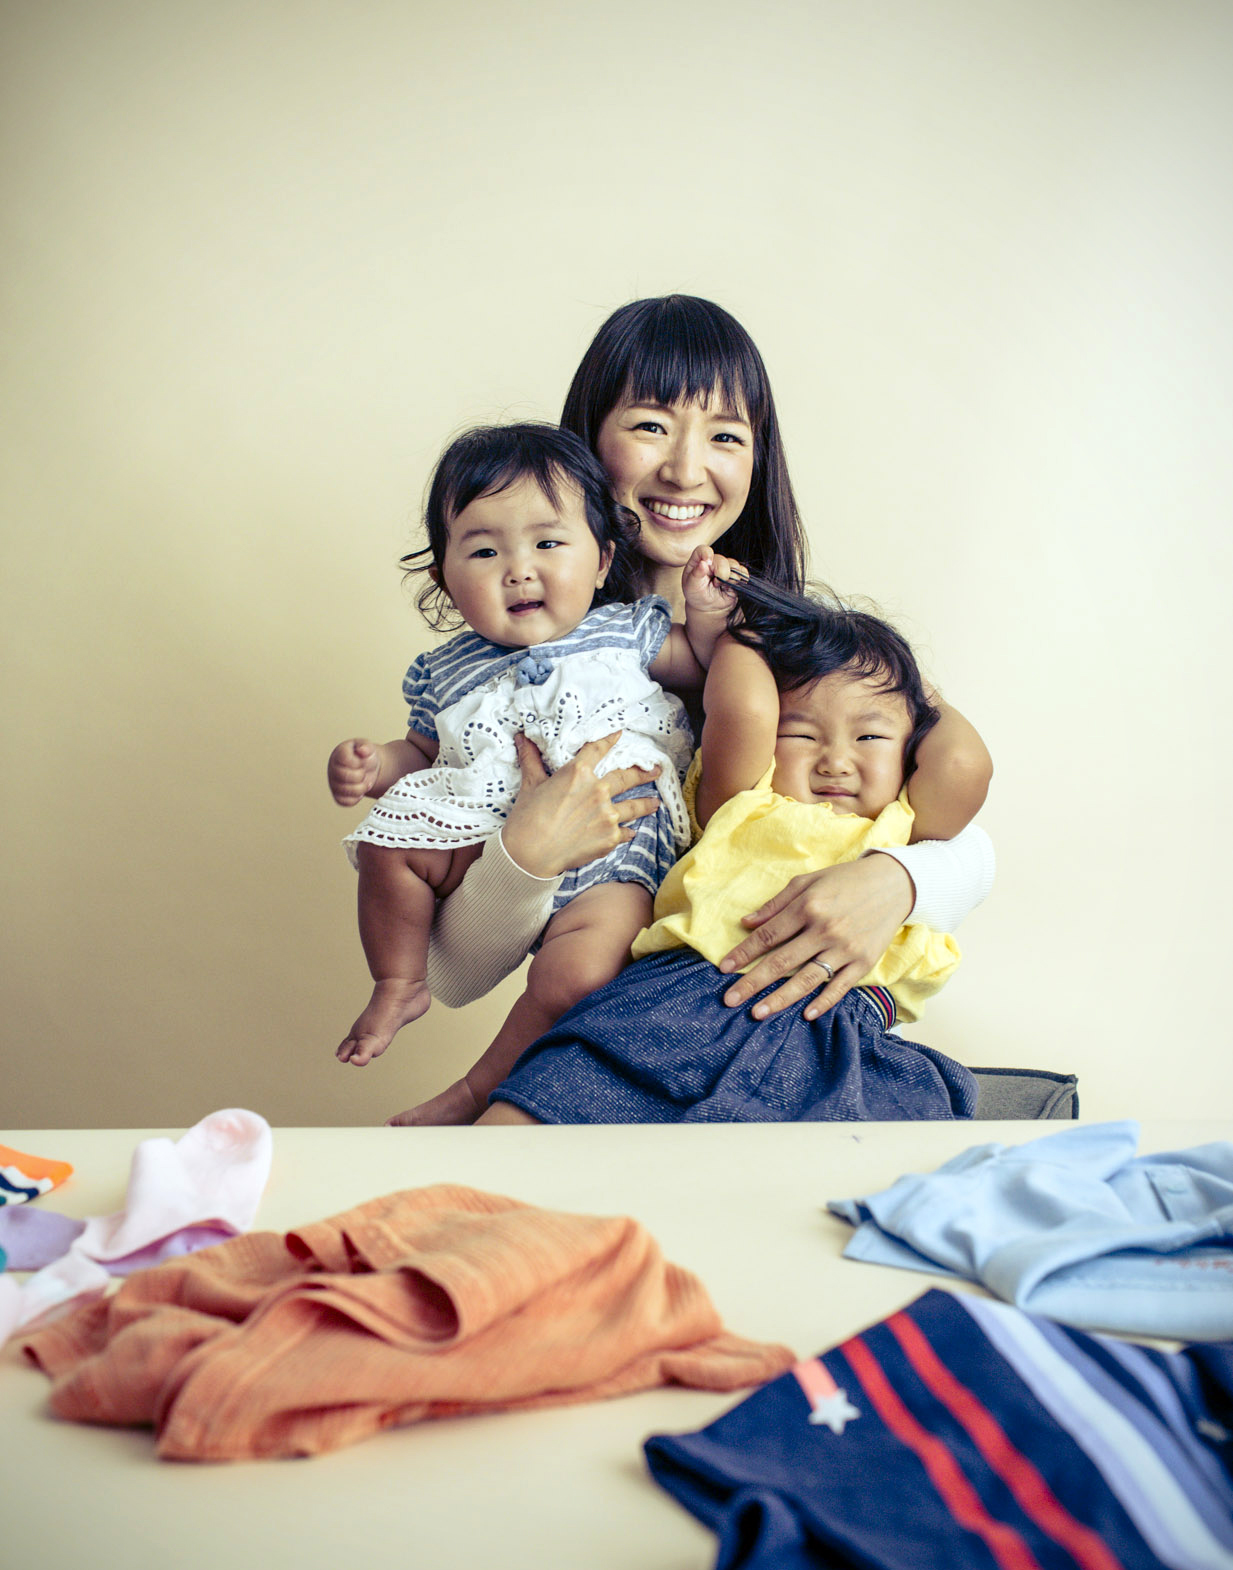 marie kondo with children, san francisco, ca